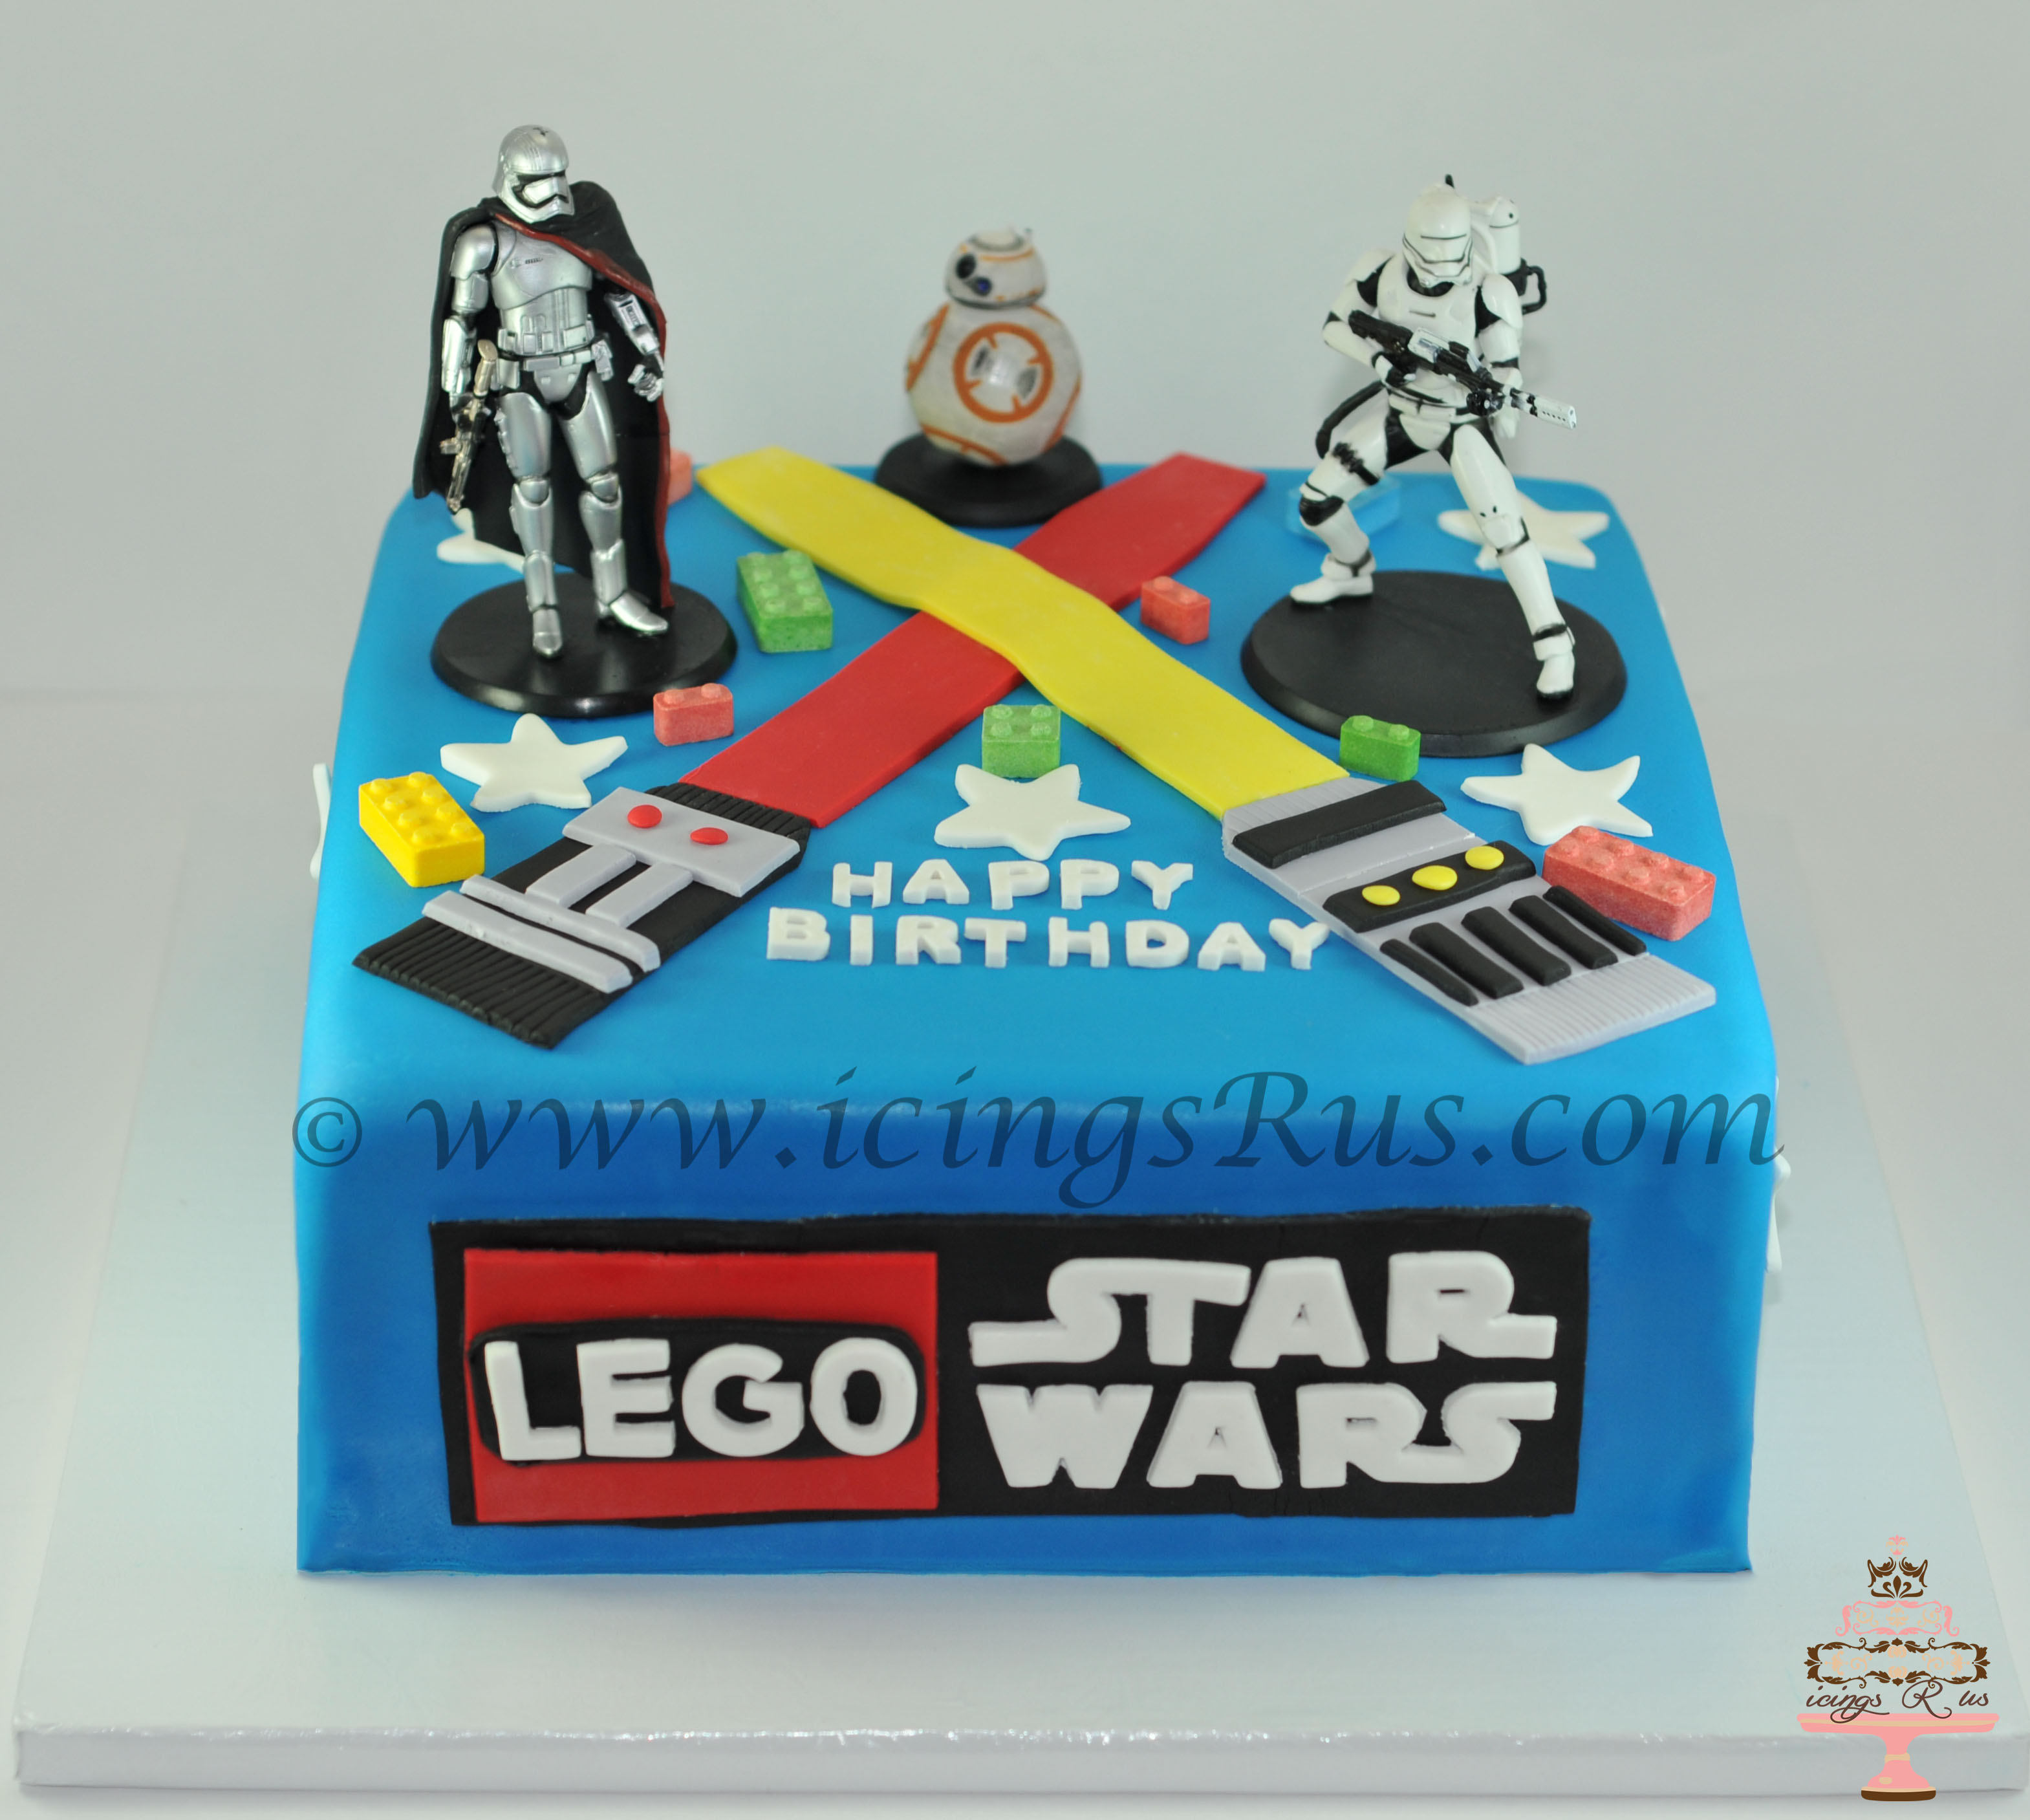 Lego-Star-Wars-Birthday-Cake